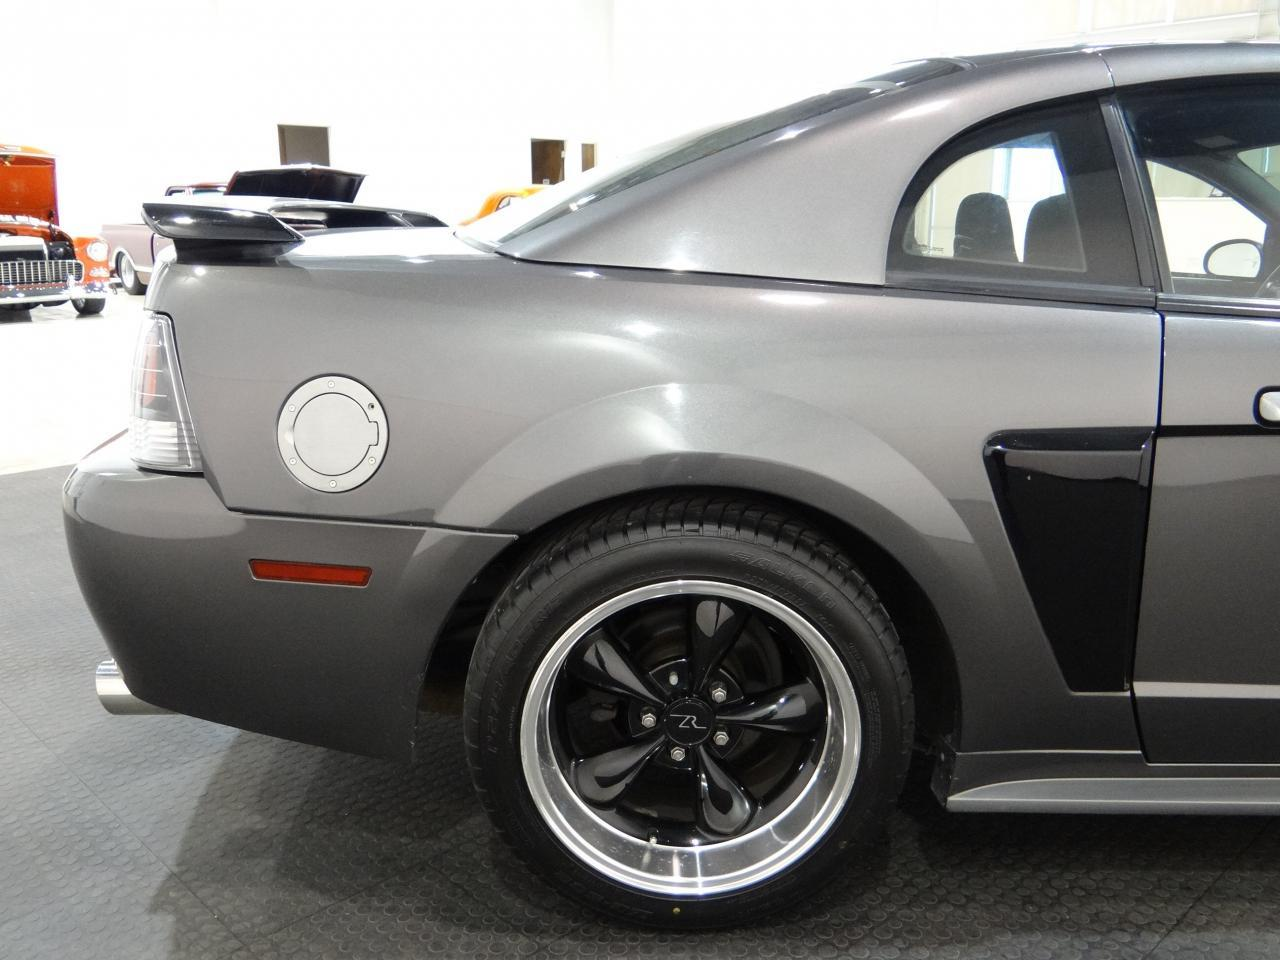 Large Picture of '03 Ford Mustang located in Indiana - $11,995.00 - KE78